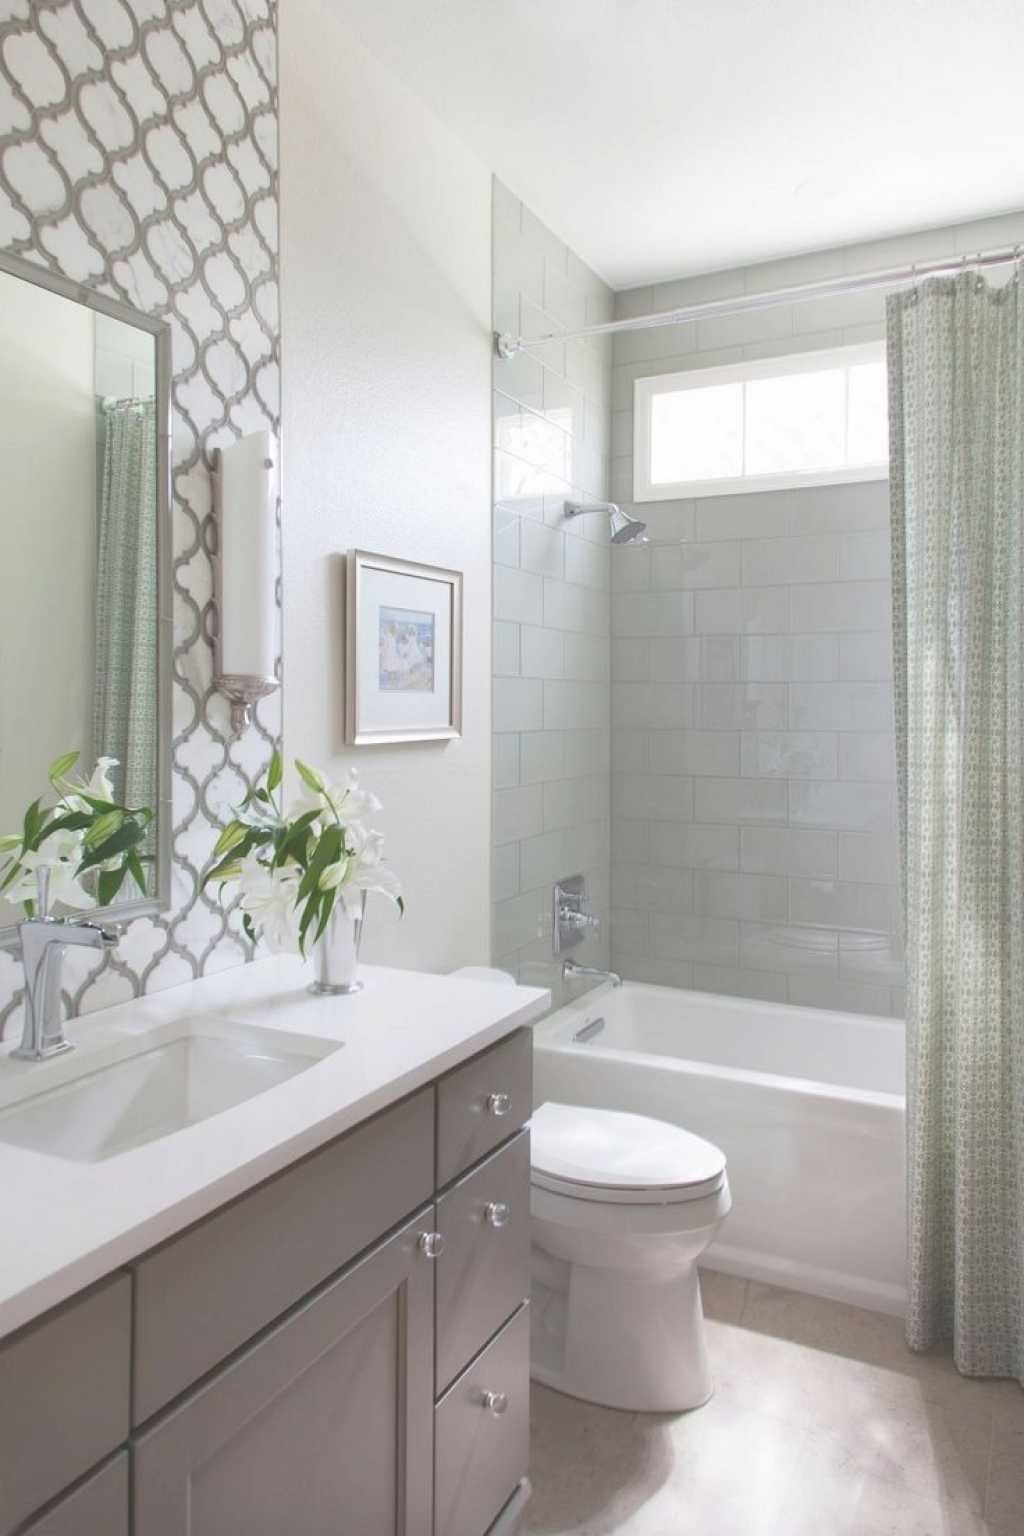 10 ideas about tub shower combo on bathroom tub Smallest bath tub